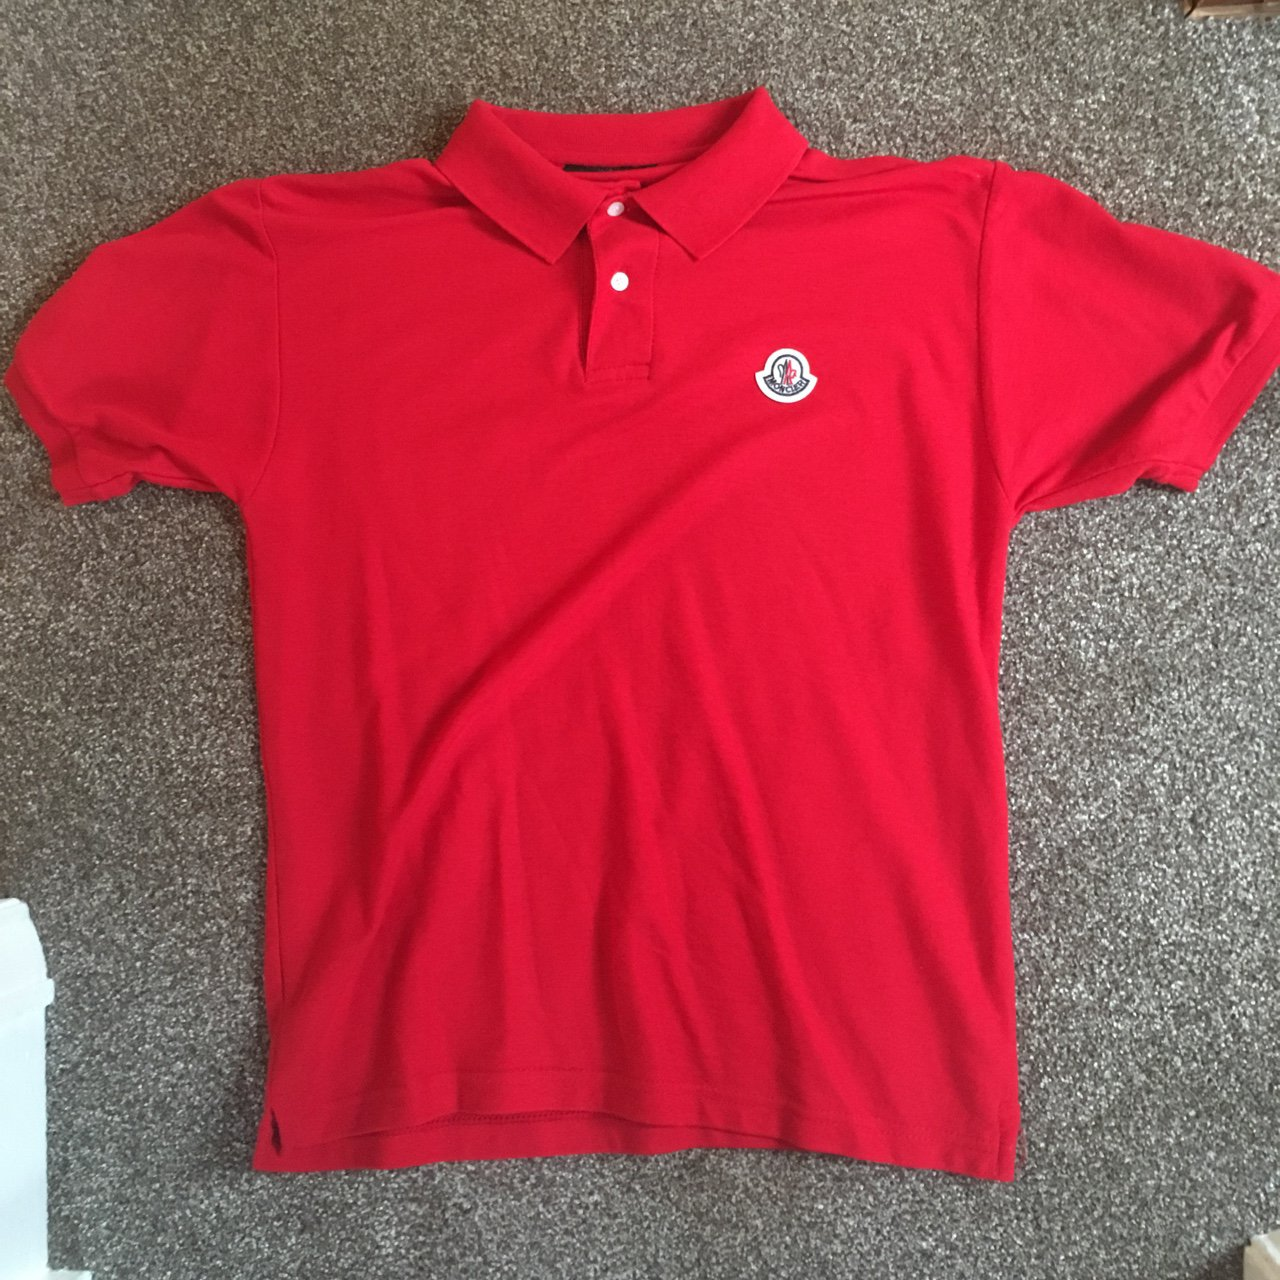 a6ed19421b5 Moncler Red Polo shirt size. Sold. £30. Gucci Web Fly Crest Sweatshirt